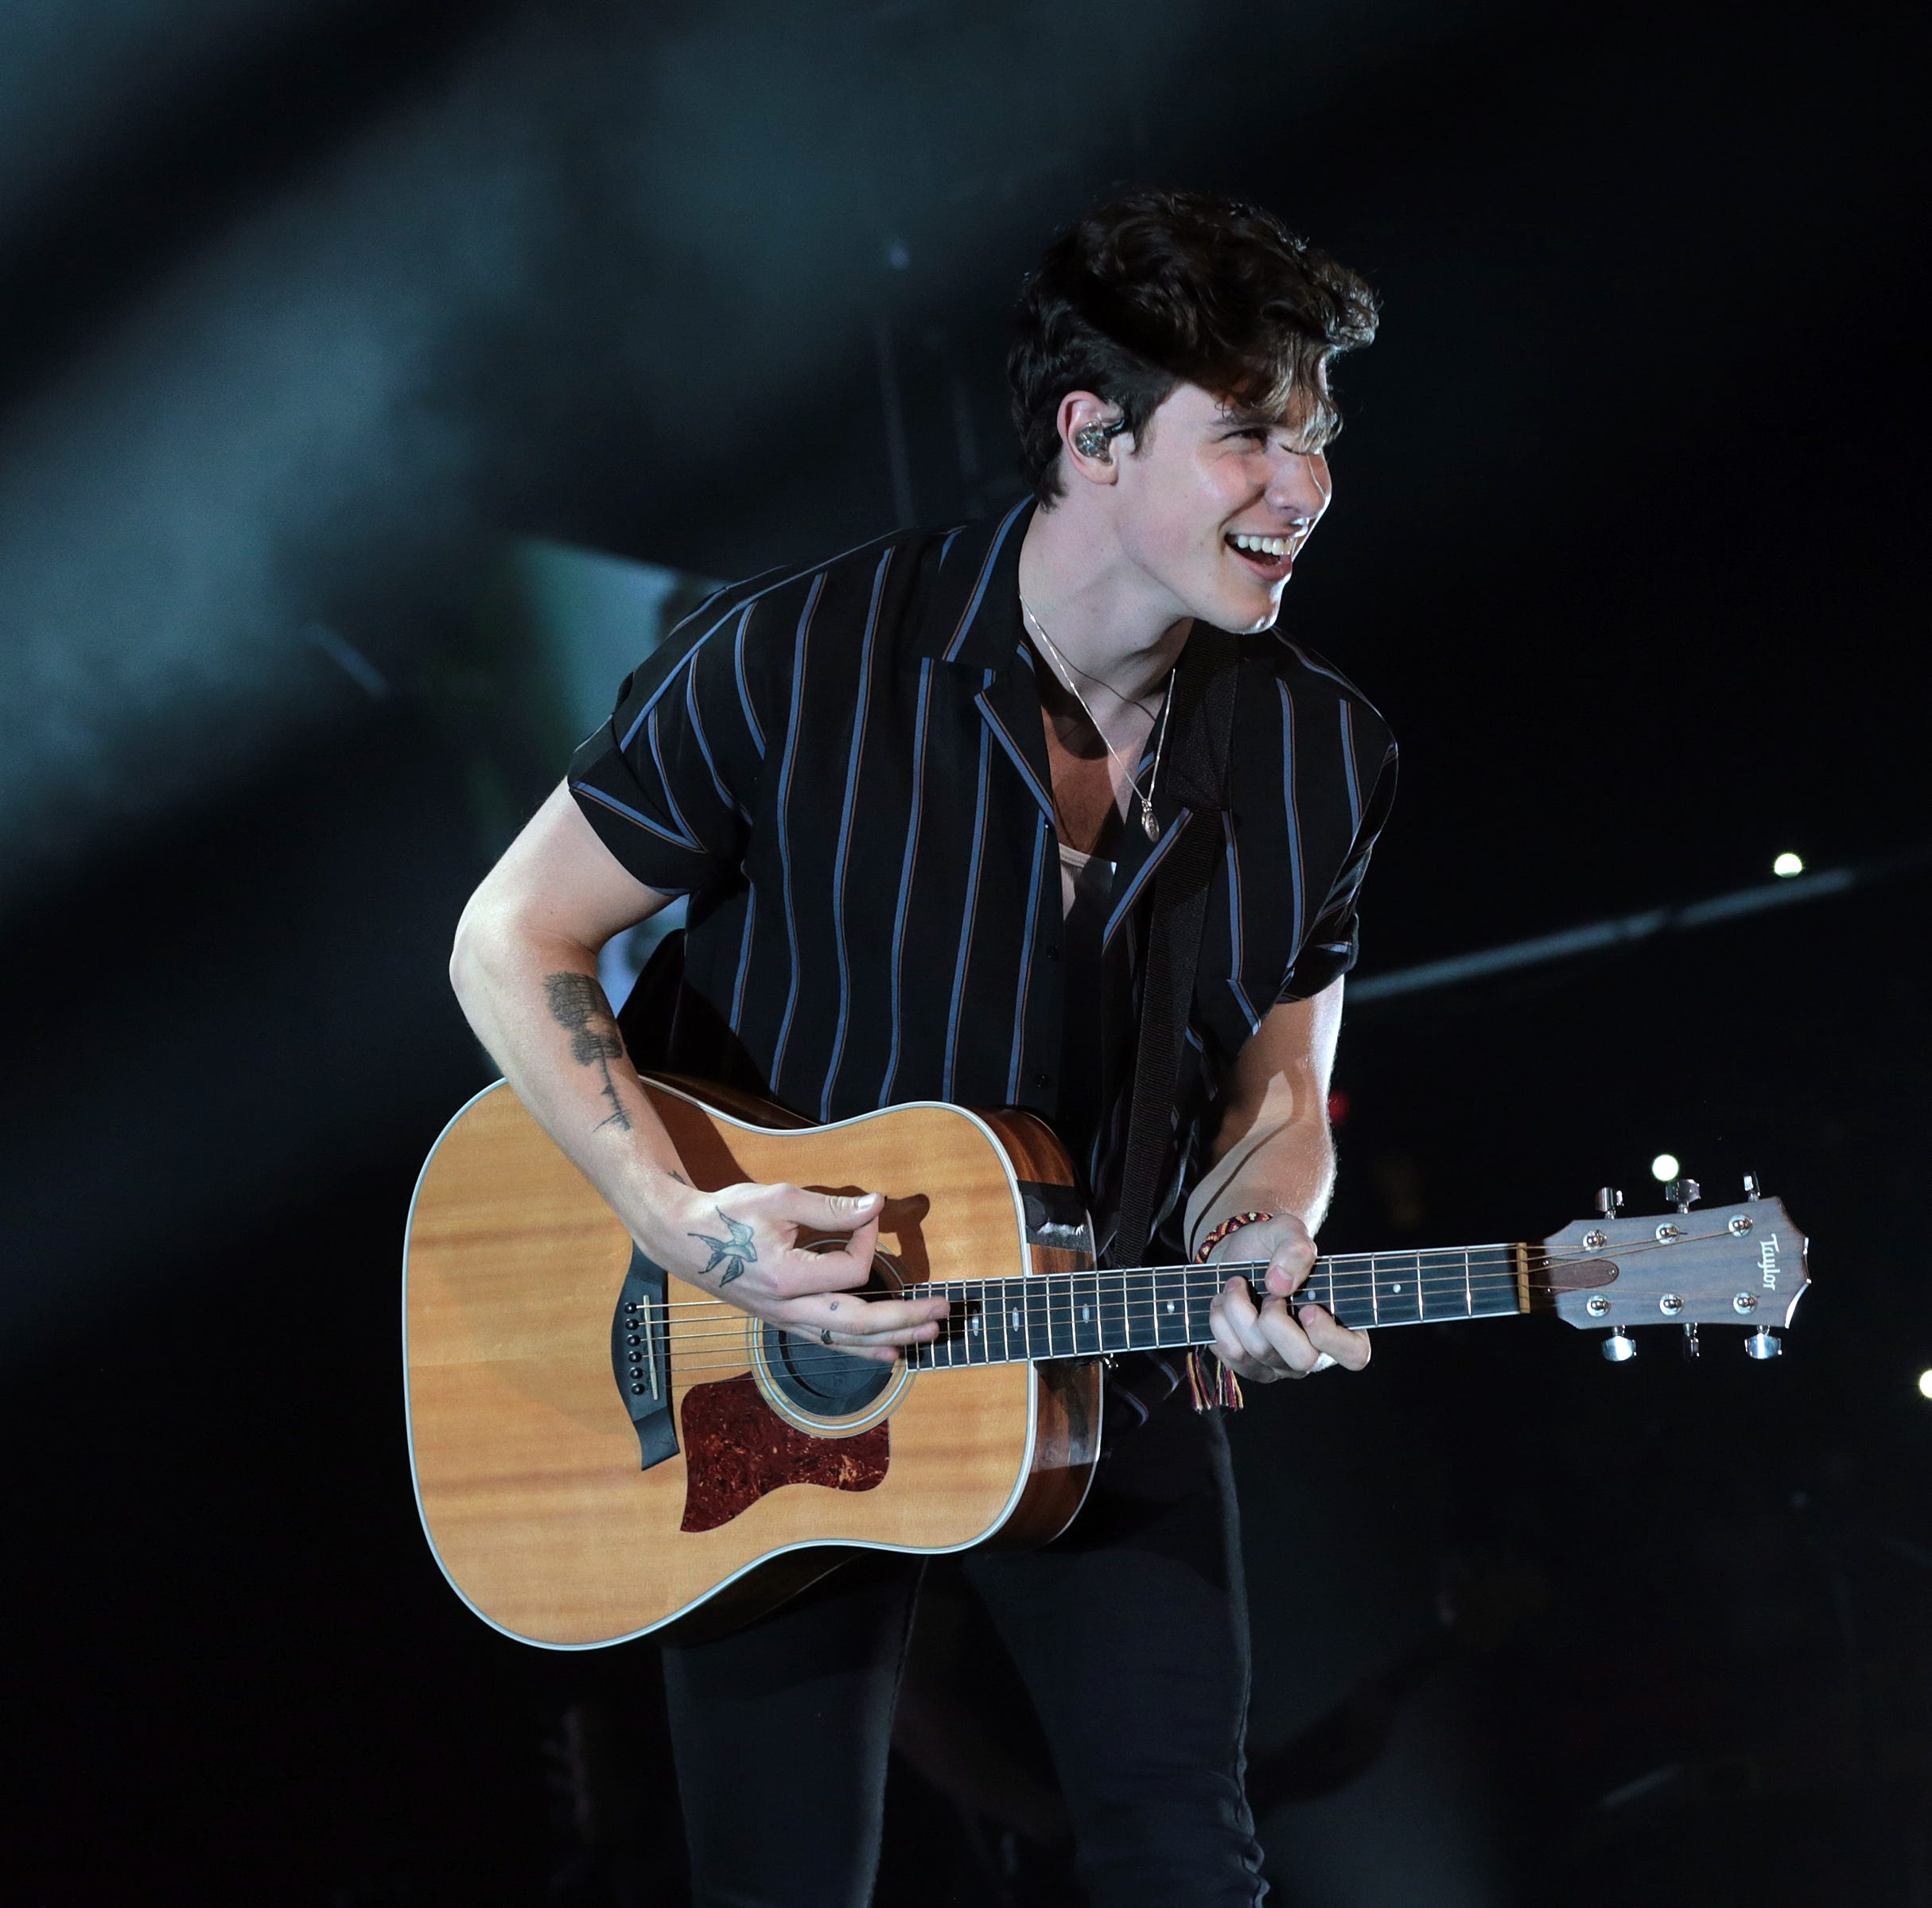 Shawn Mendes, Khalid perform together in El Paso concert at Don Haskins Center